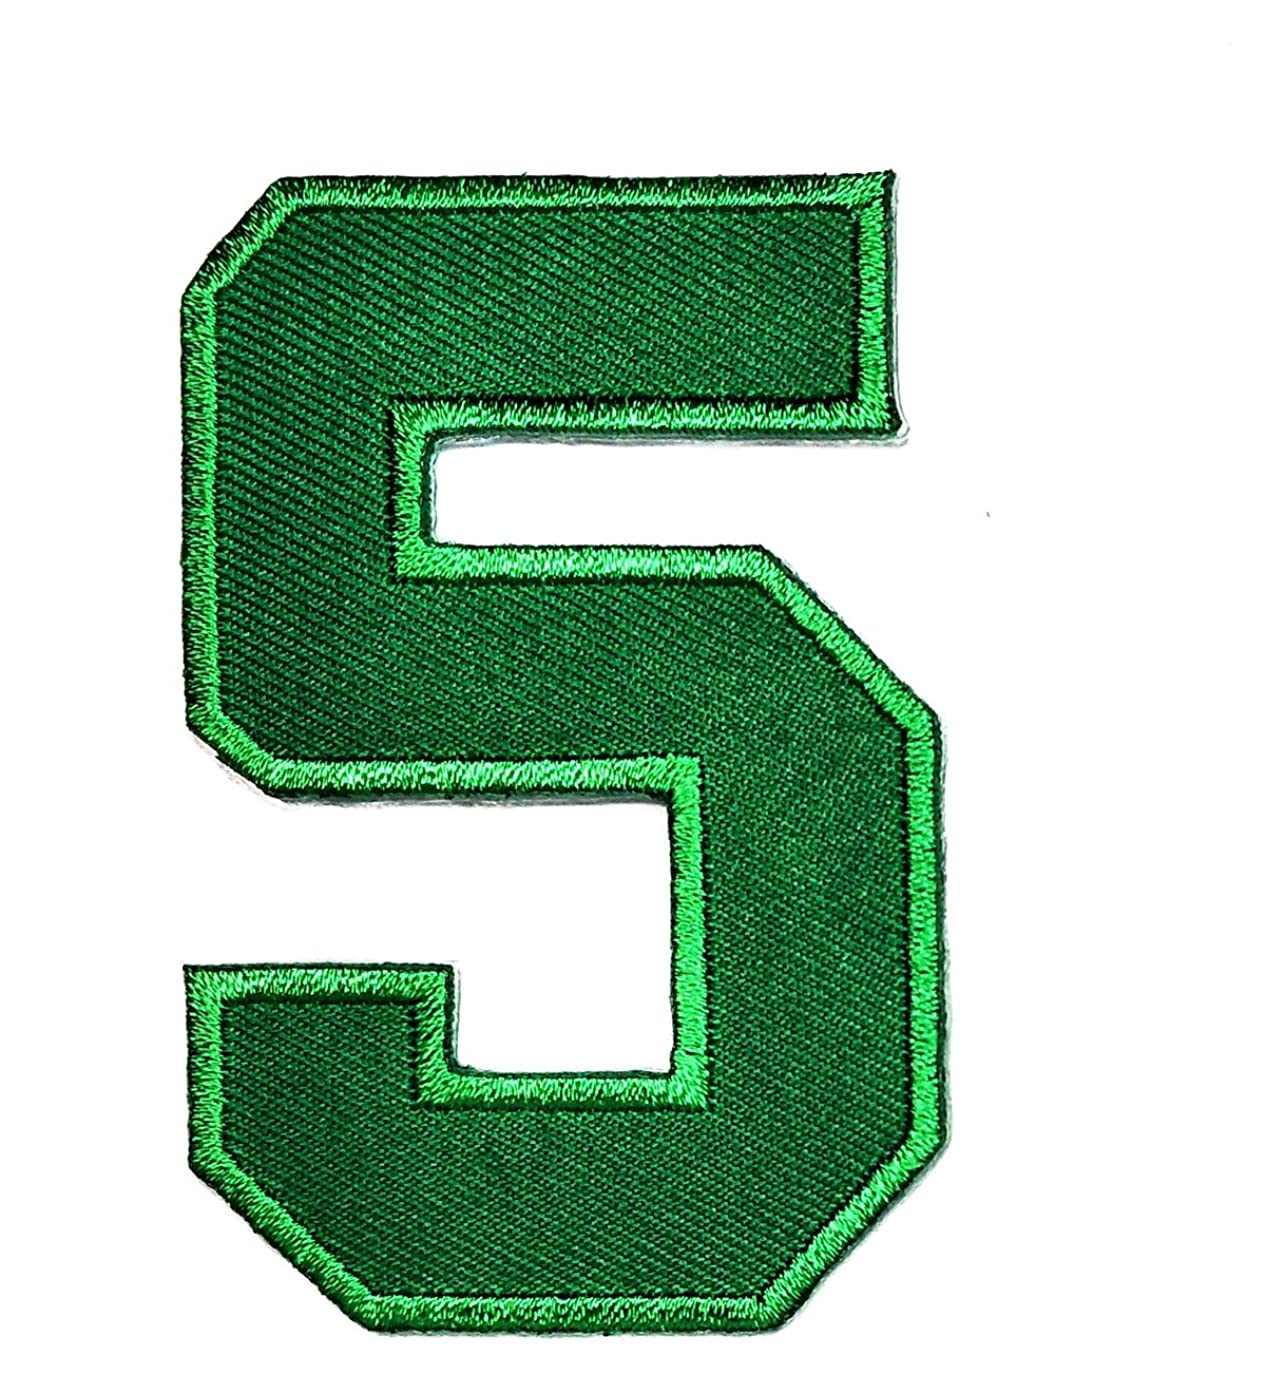 HHO Green Number 5 No 5 Math Counting No 5 School Patch Embroidered DIY Patches, Cute Applique Sew Iron on Kids Craft Patch for Bags Jackets Jeans Clothes